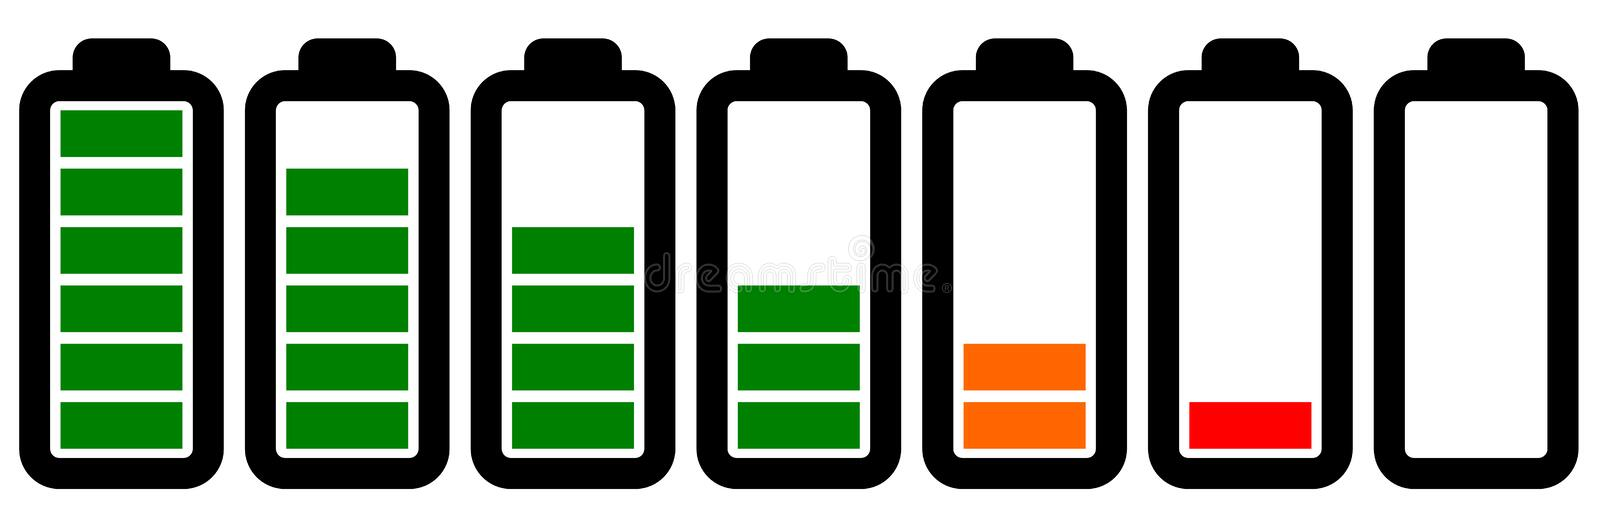 Set of battery icons with different levels of charge stock illustration